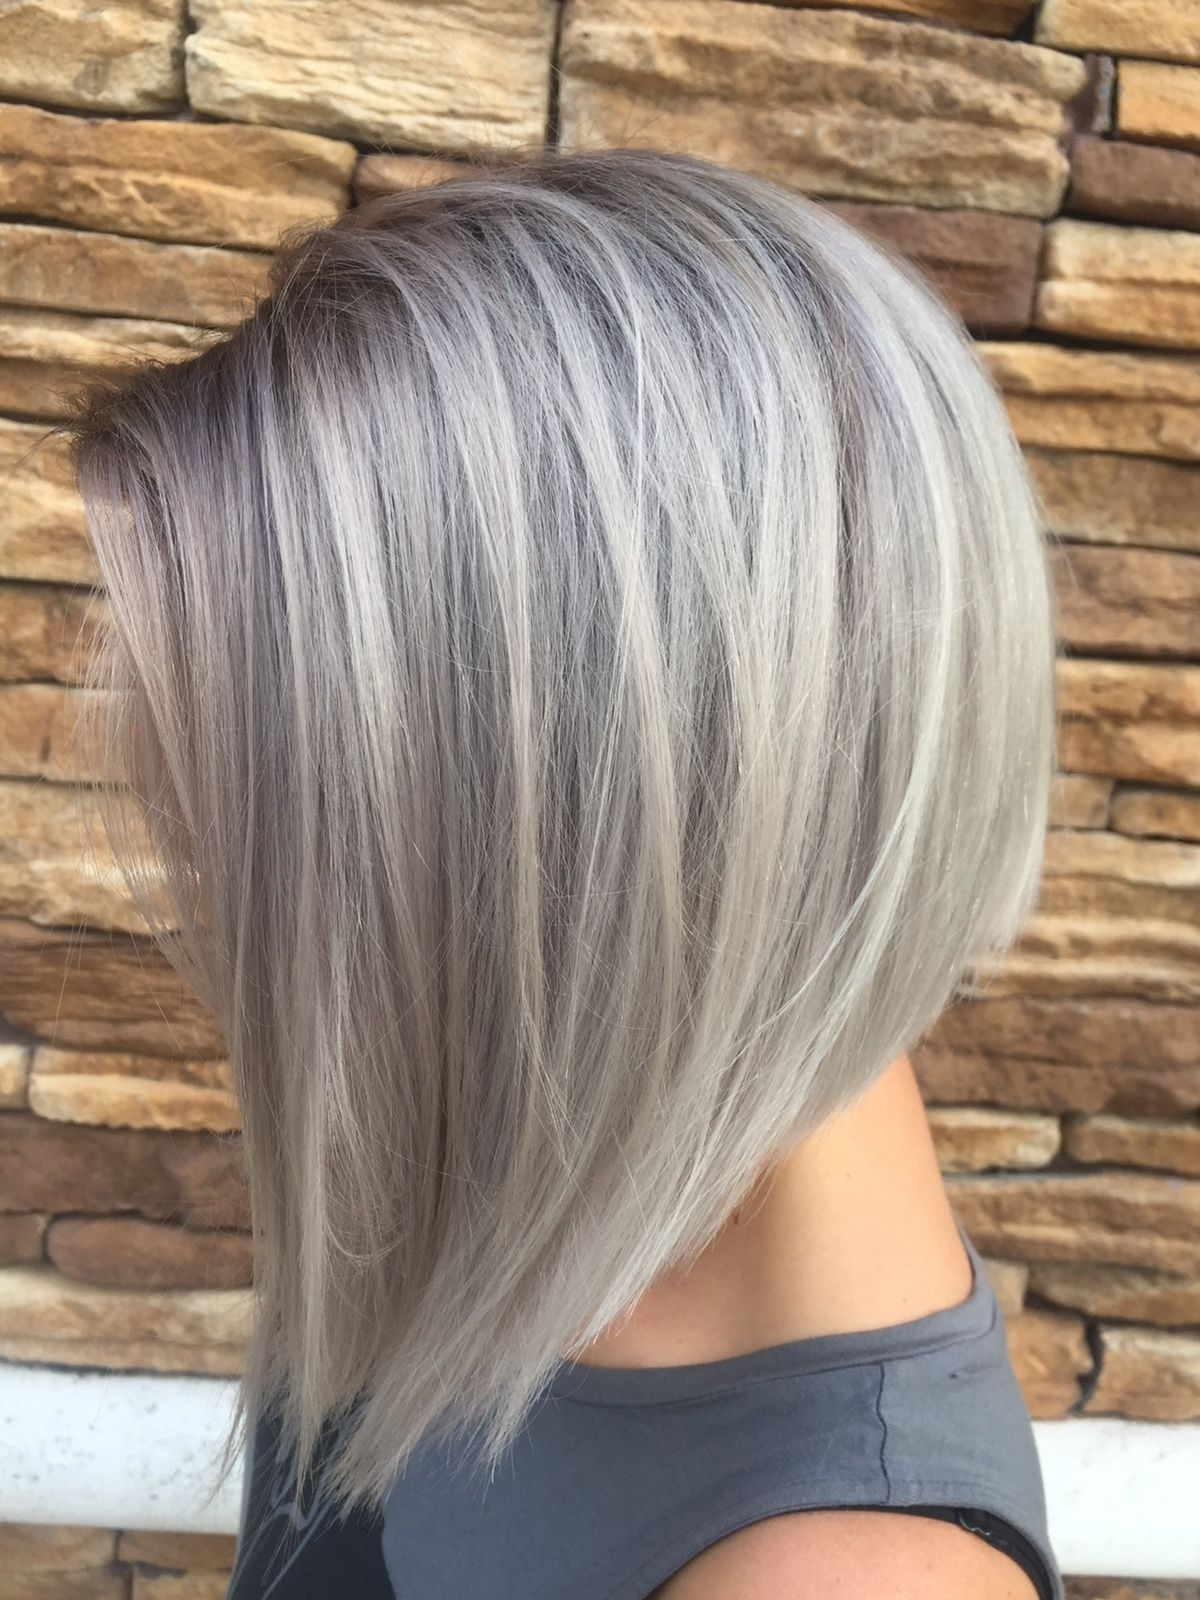 Braids, Buns, And Twists!: Step By Step Tutorials For 82 Fabulous With Regard To Well Known Solid White Blonde Bob Hairstyles (View 6 of 20)